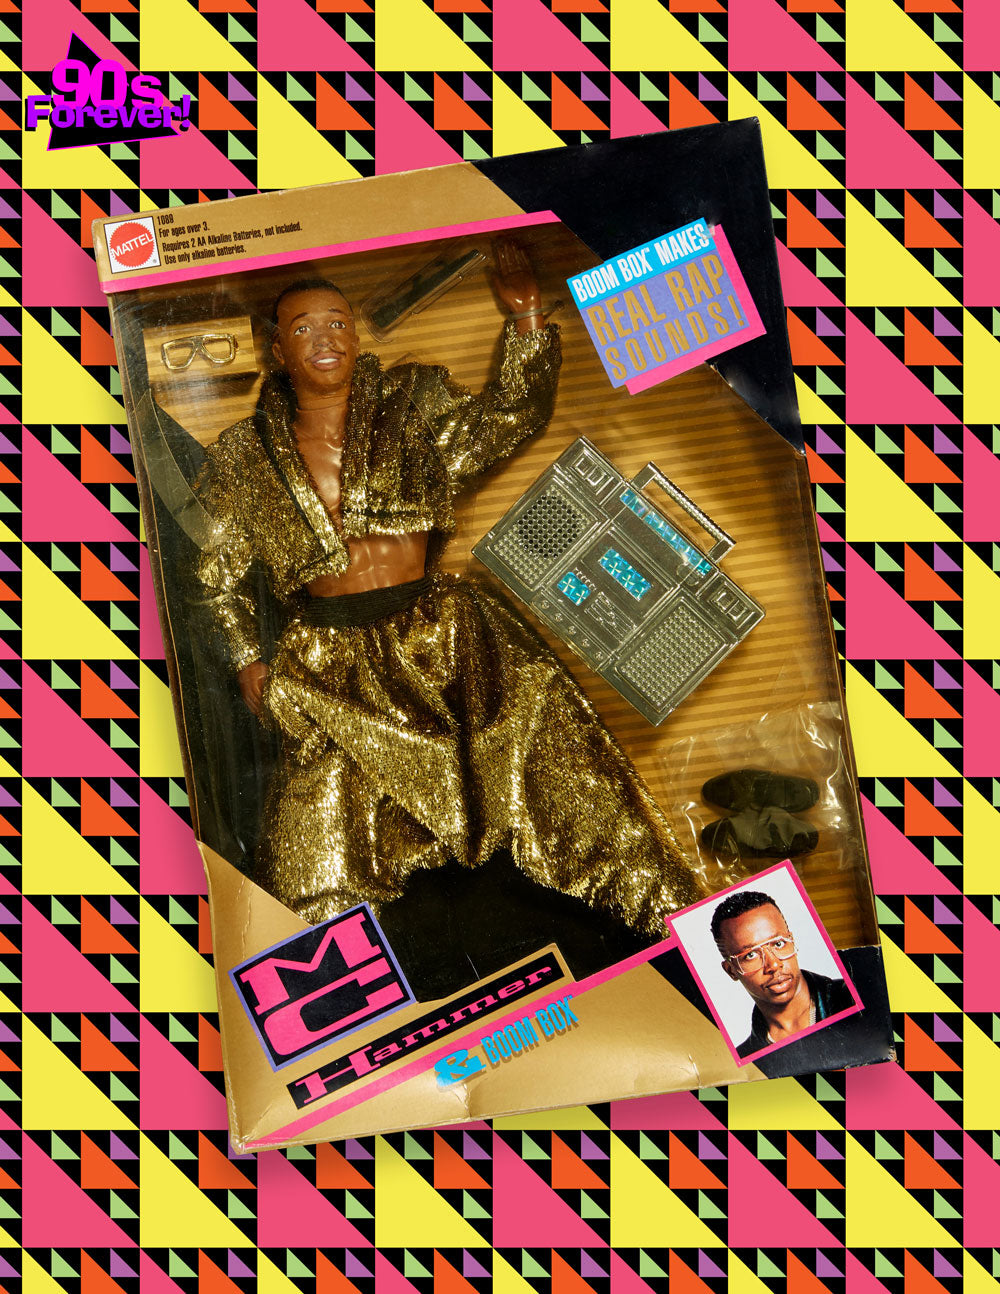 90s Forever Retro Vintage Fashion Apparel Lookbook - MC Hammer Figurine and Toy Boom Box